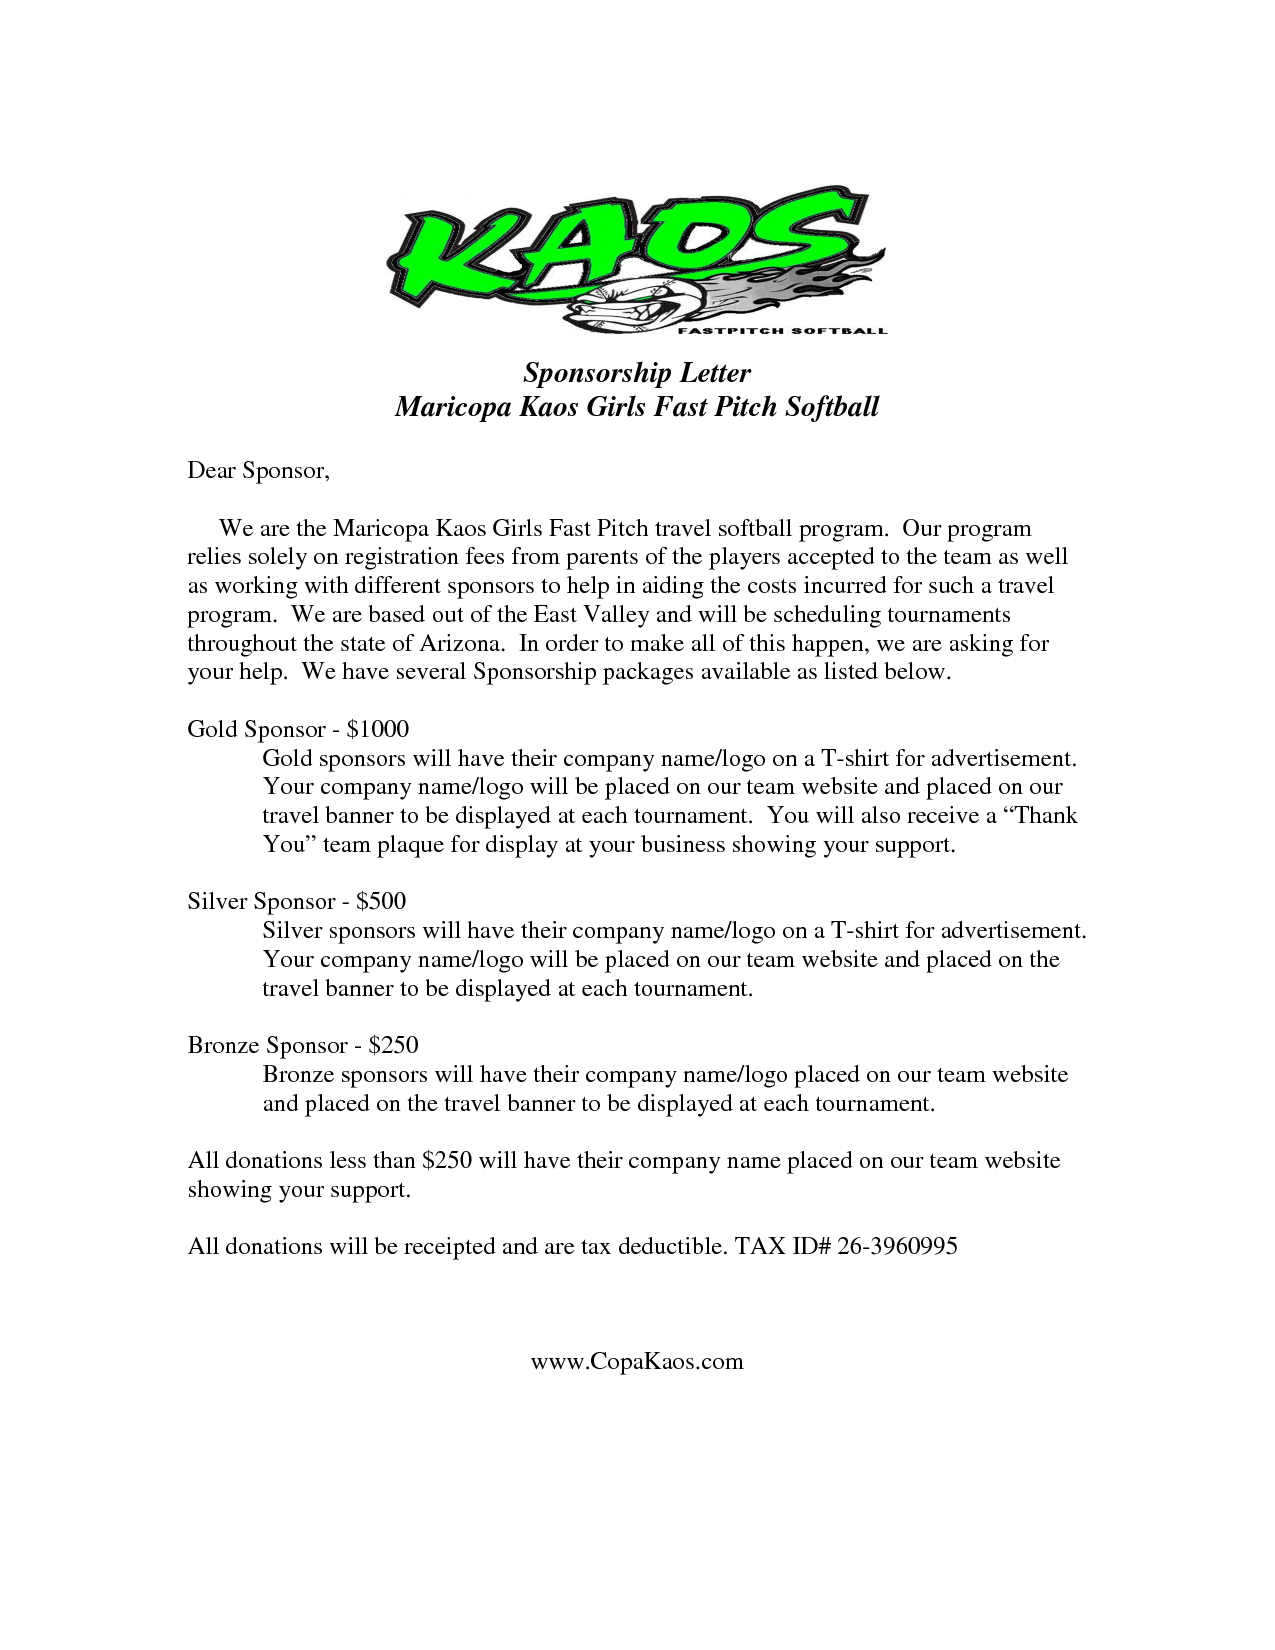 Cheerleading Donation Letter Template - Image Result for Sample Sponsor Request Letter Donation